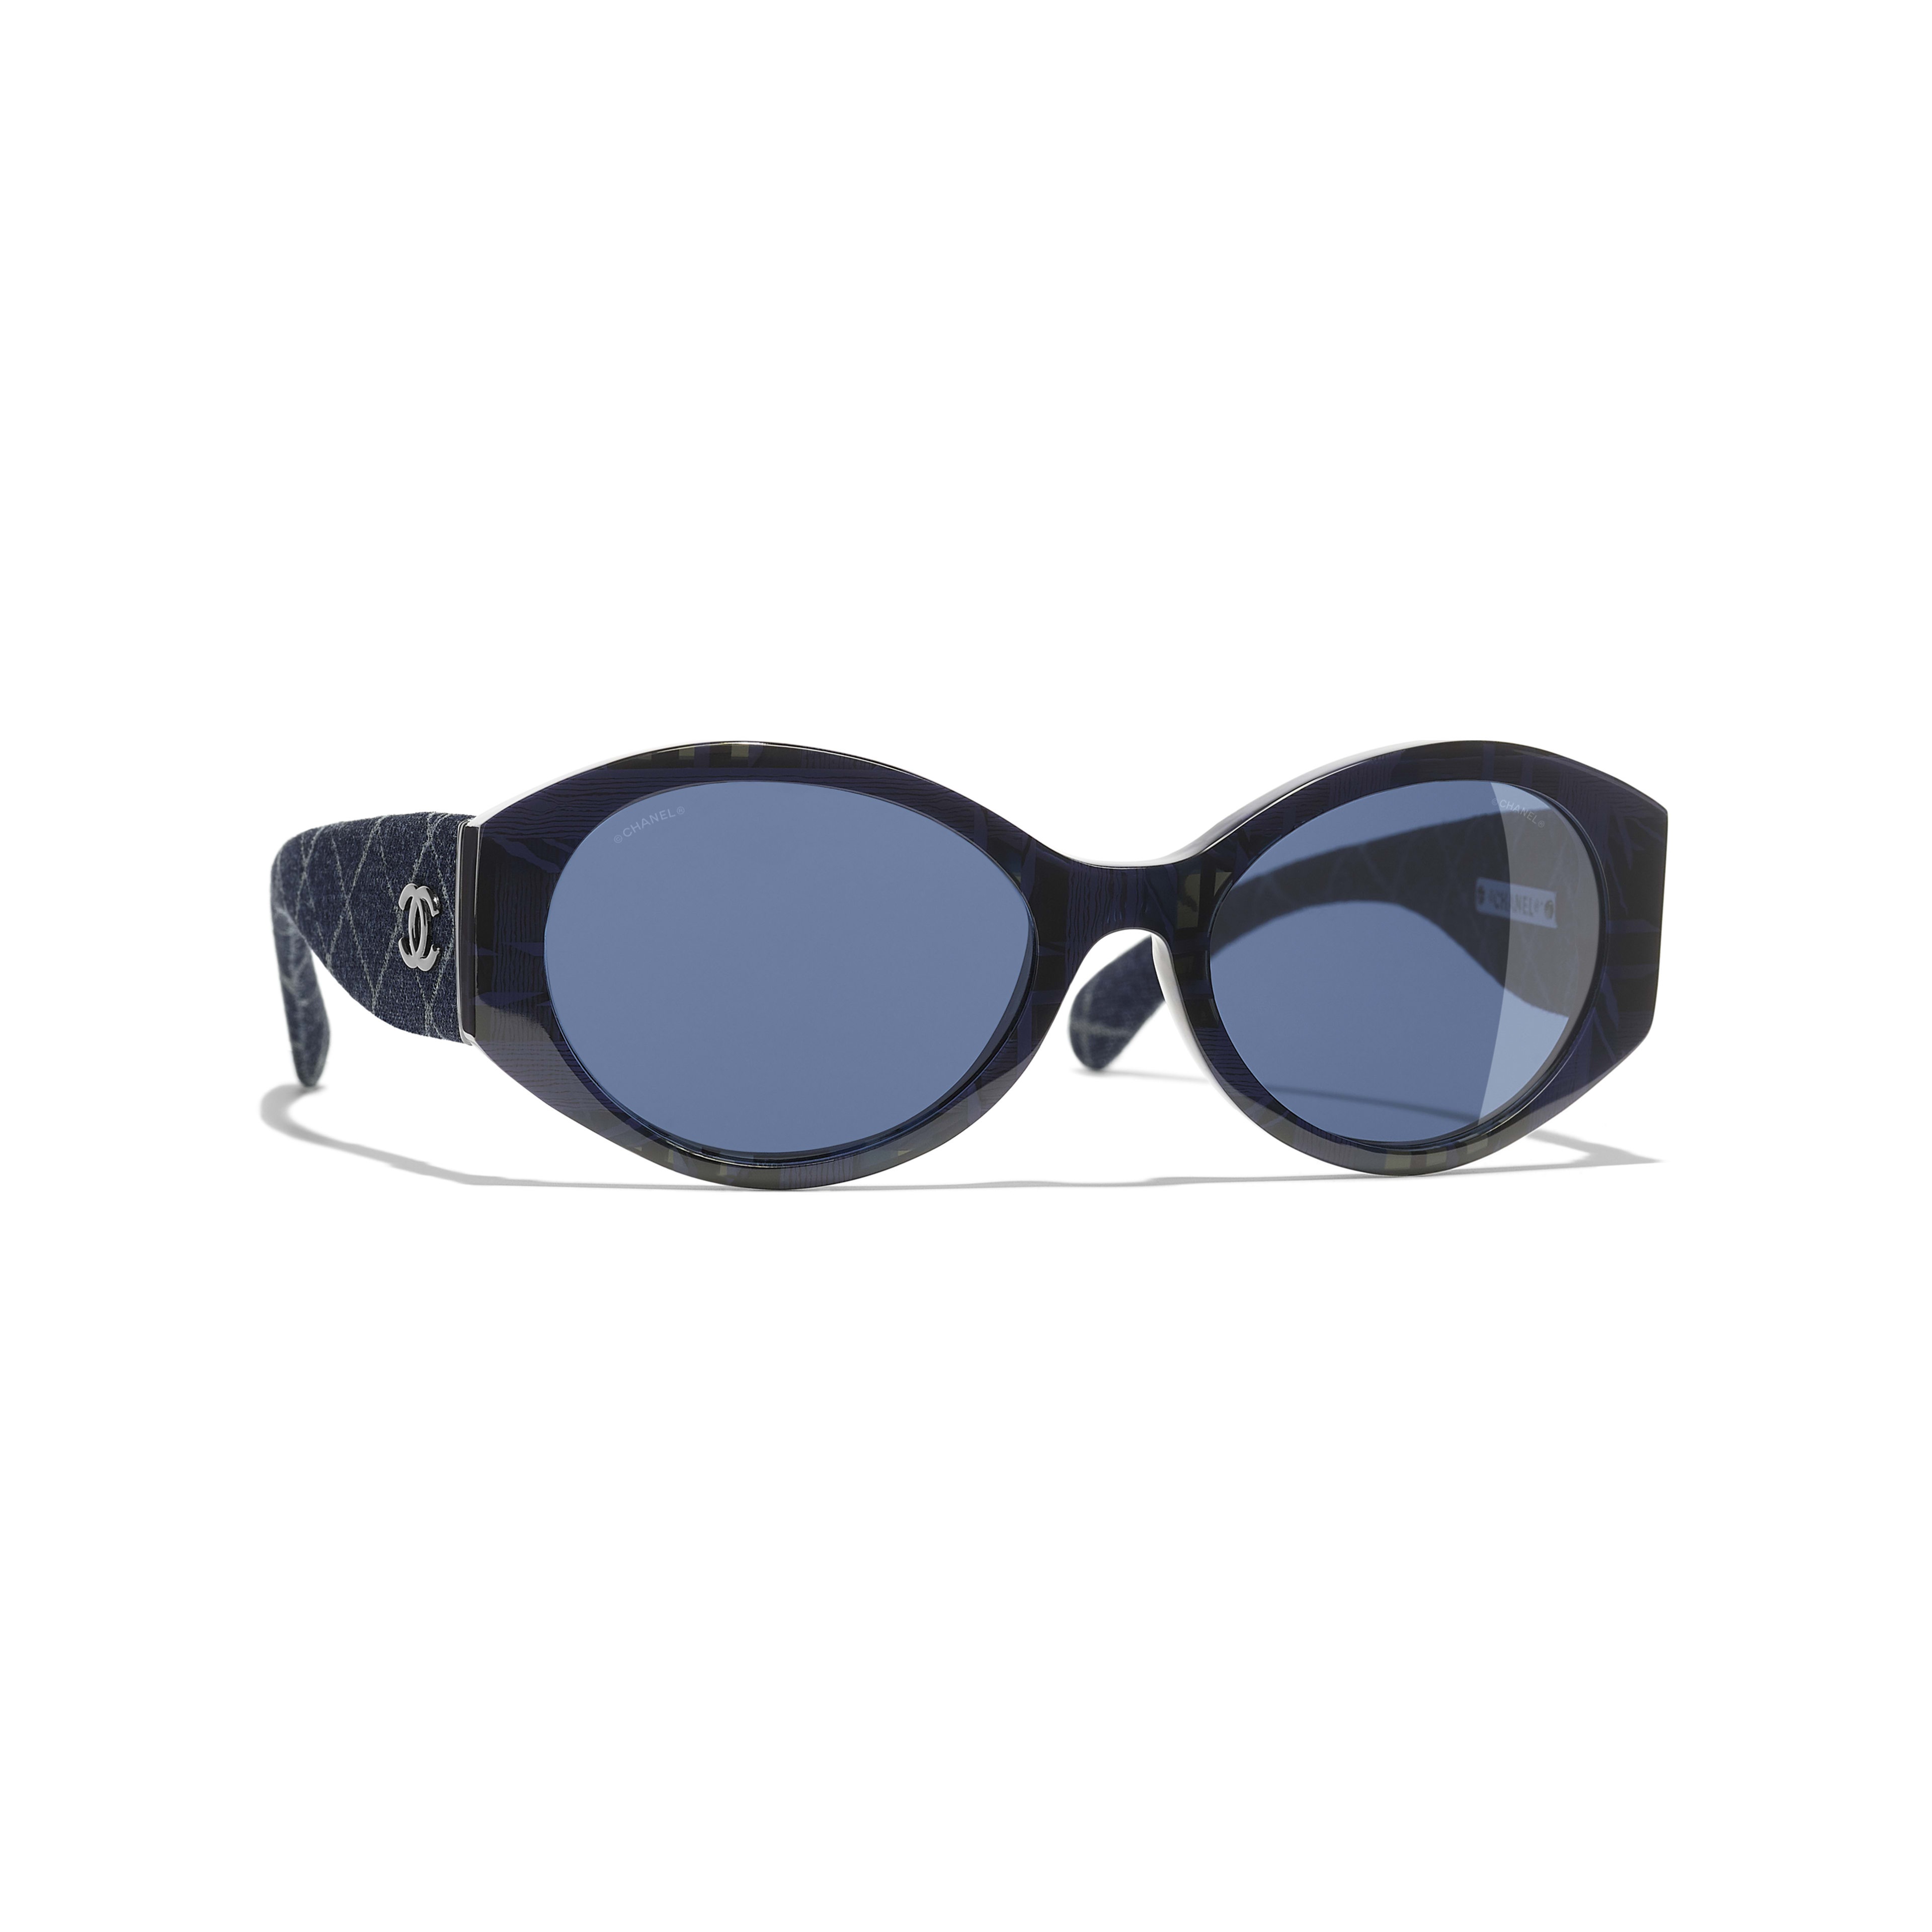 Oval Sunglasses - Blue & Dark Blue - Acetate & Denim - Default view - see full sized version